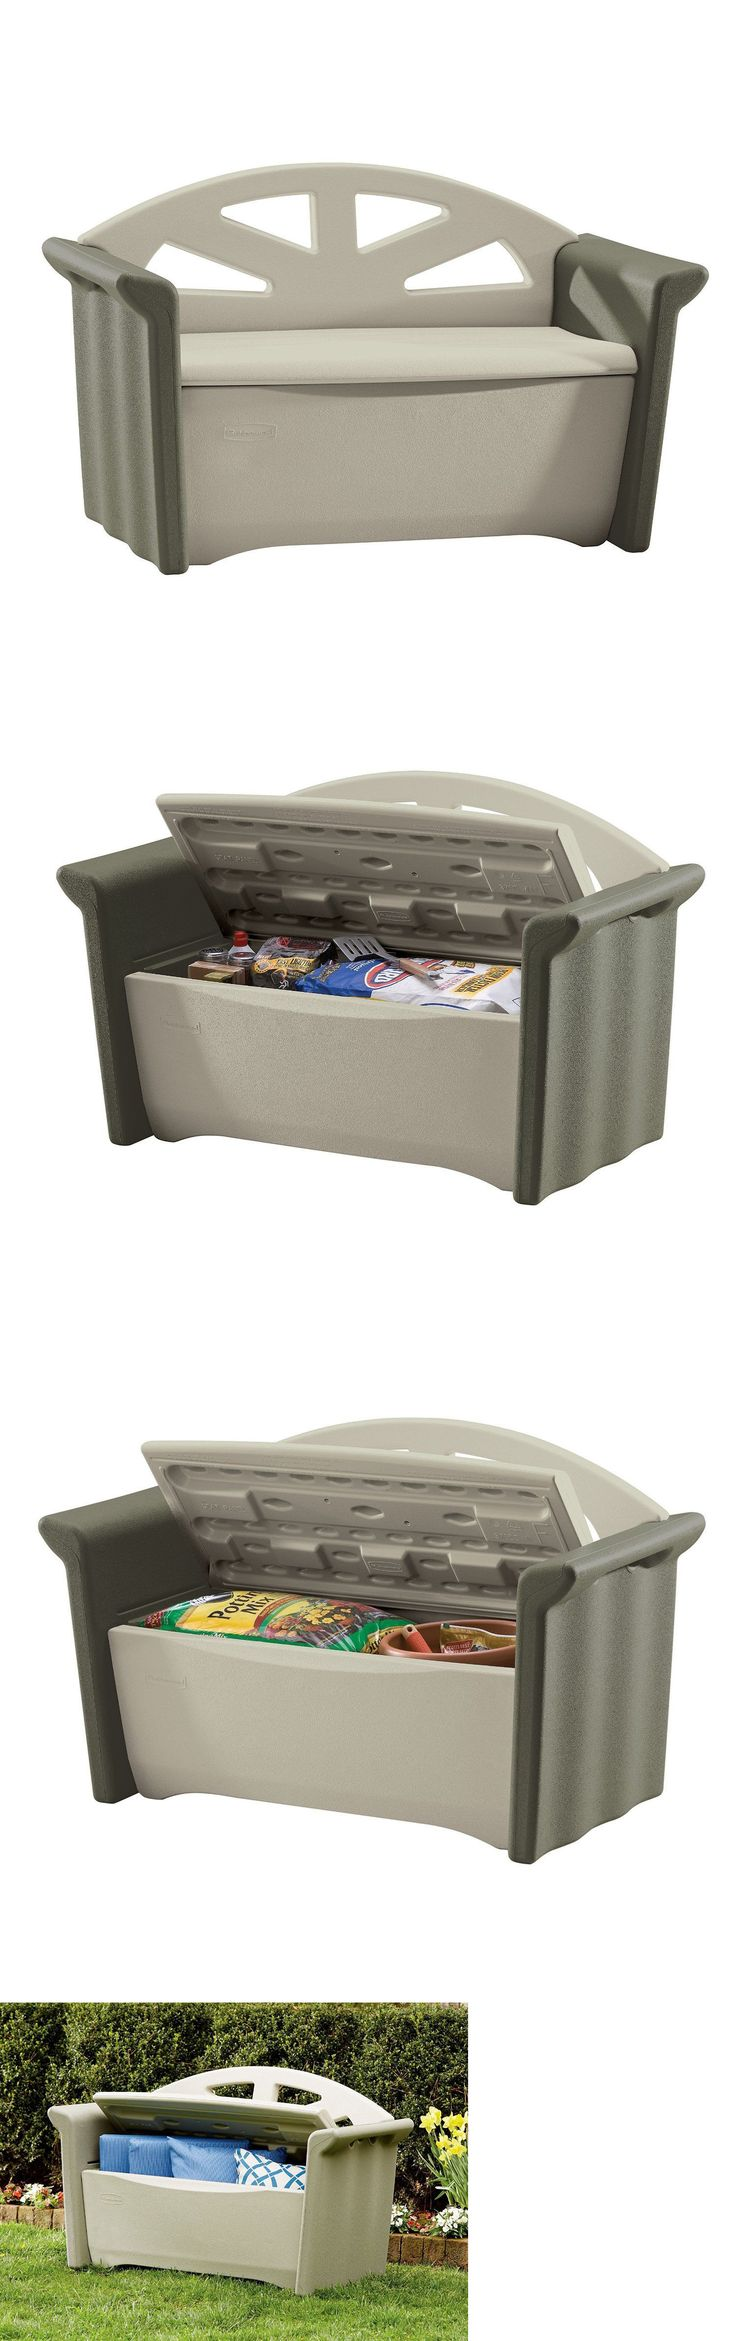 Other Patio and Garden Furniture 10035: Rubbermaid Xl Deck Box With Seat Patio Furniture Pool Bar B Que Storage -> BUY IT NOW ONLY: $139.9 on eBay!